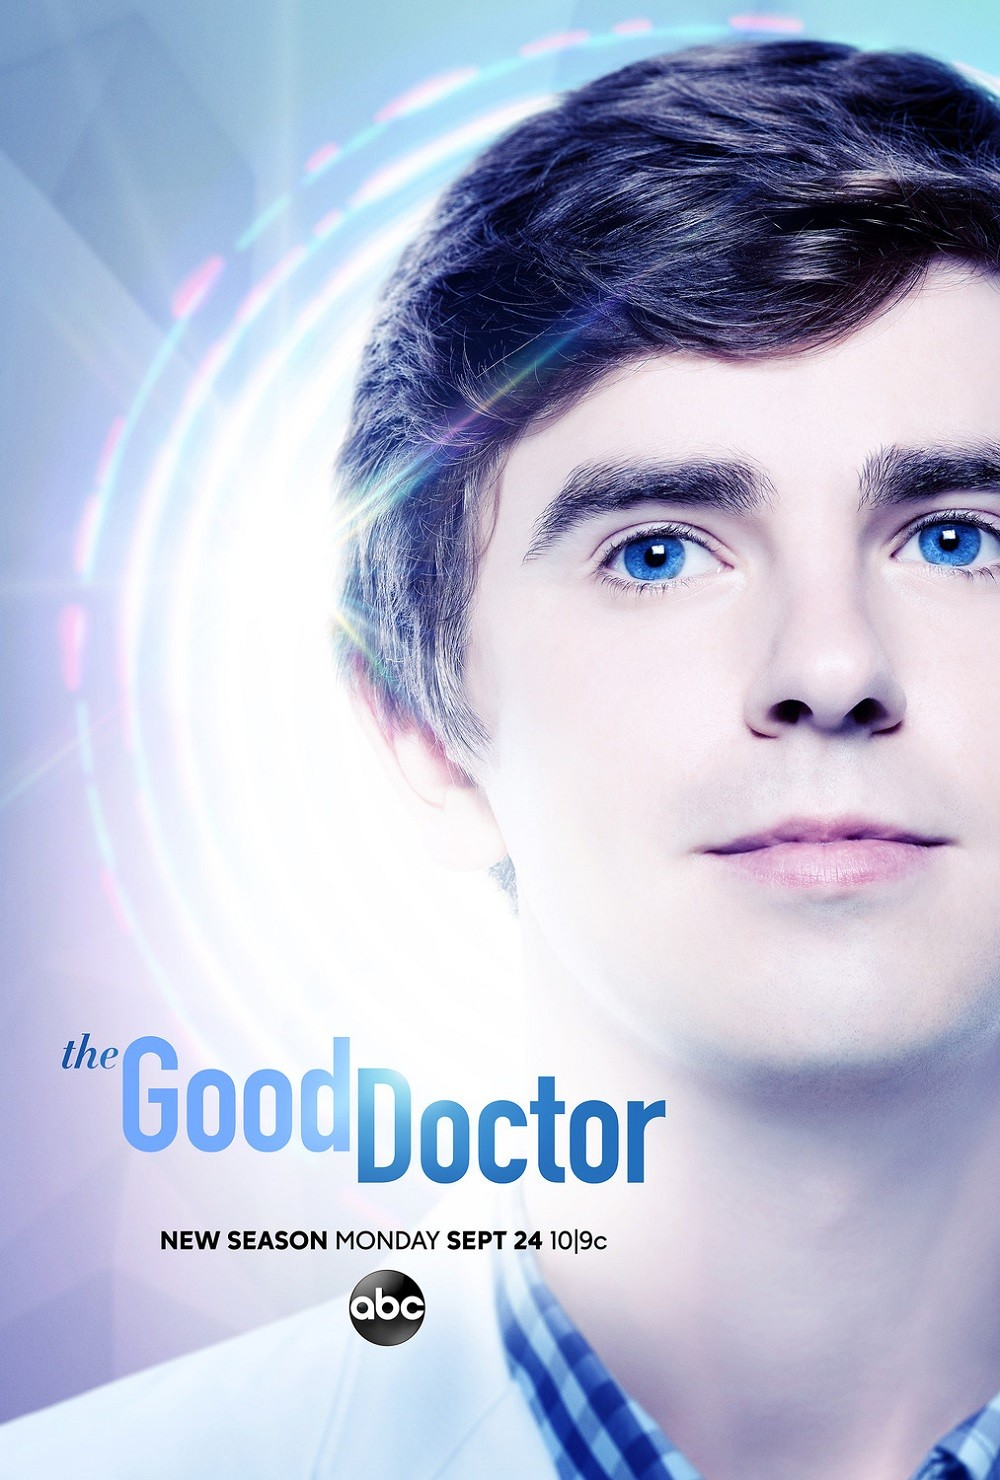 The Good Doctor Season 2 好医生 第二季